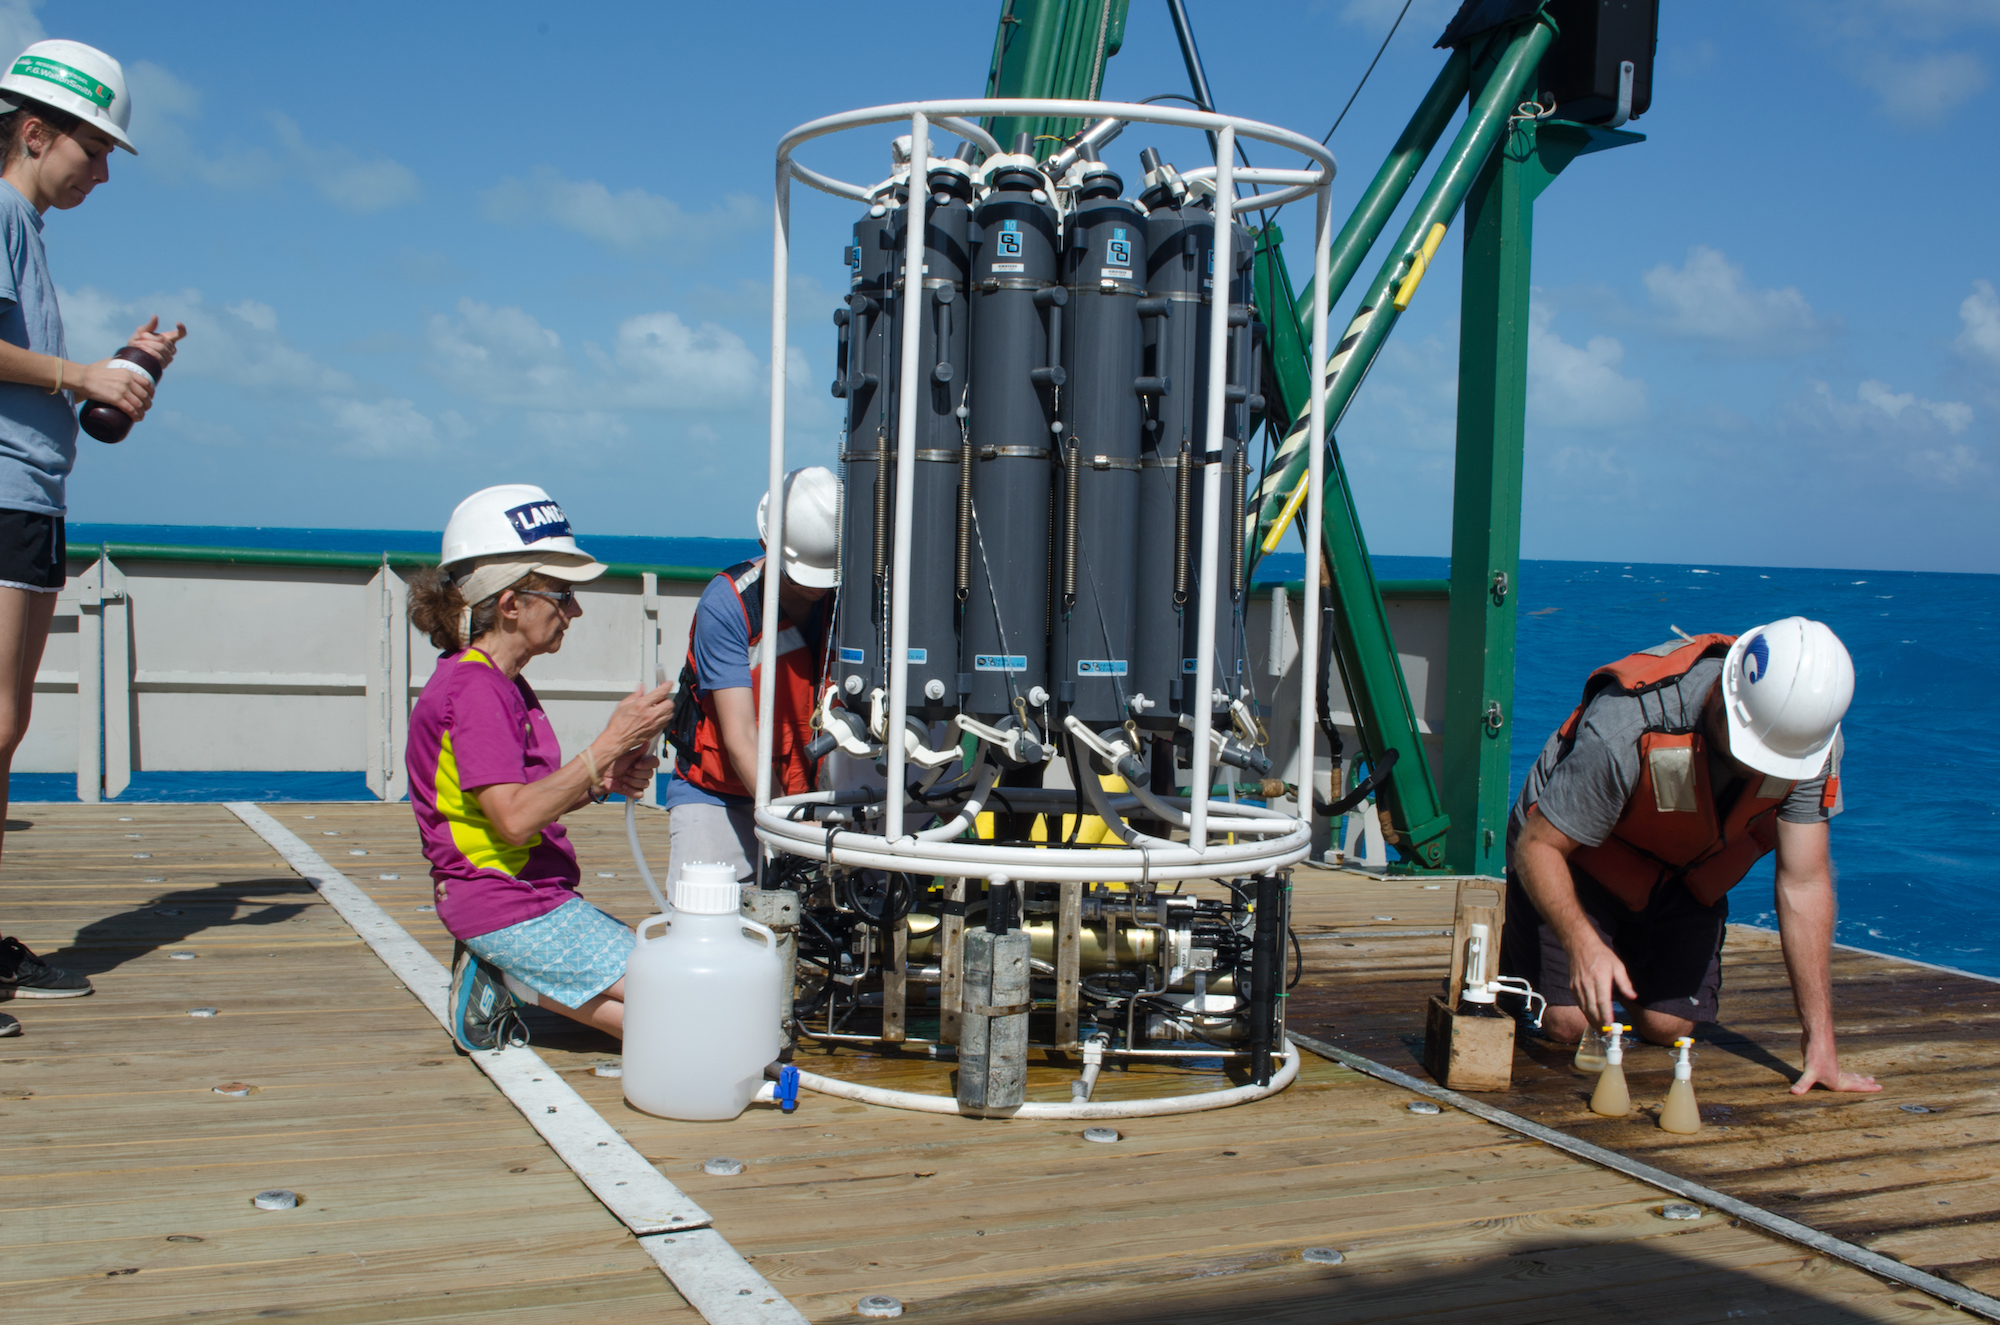 Scientists collecting water samples from the Niskin bottles. Image credit: NOAA